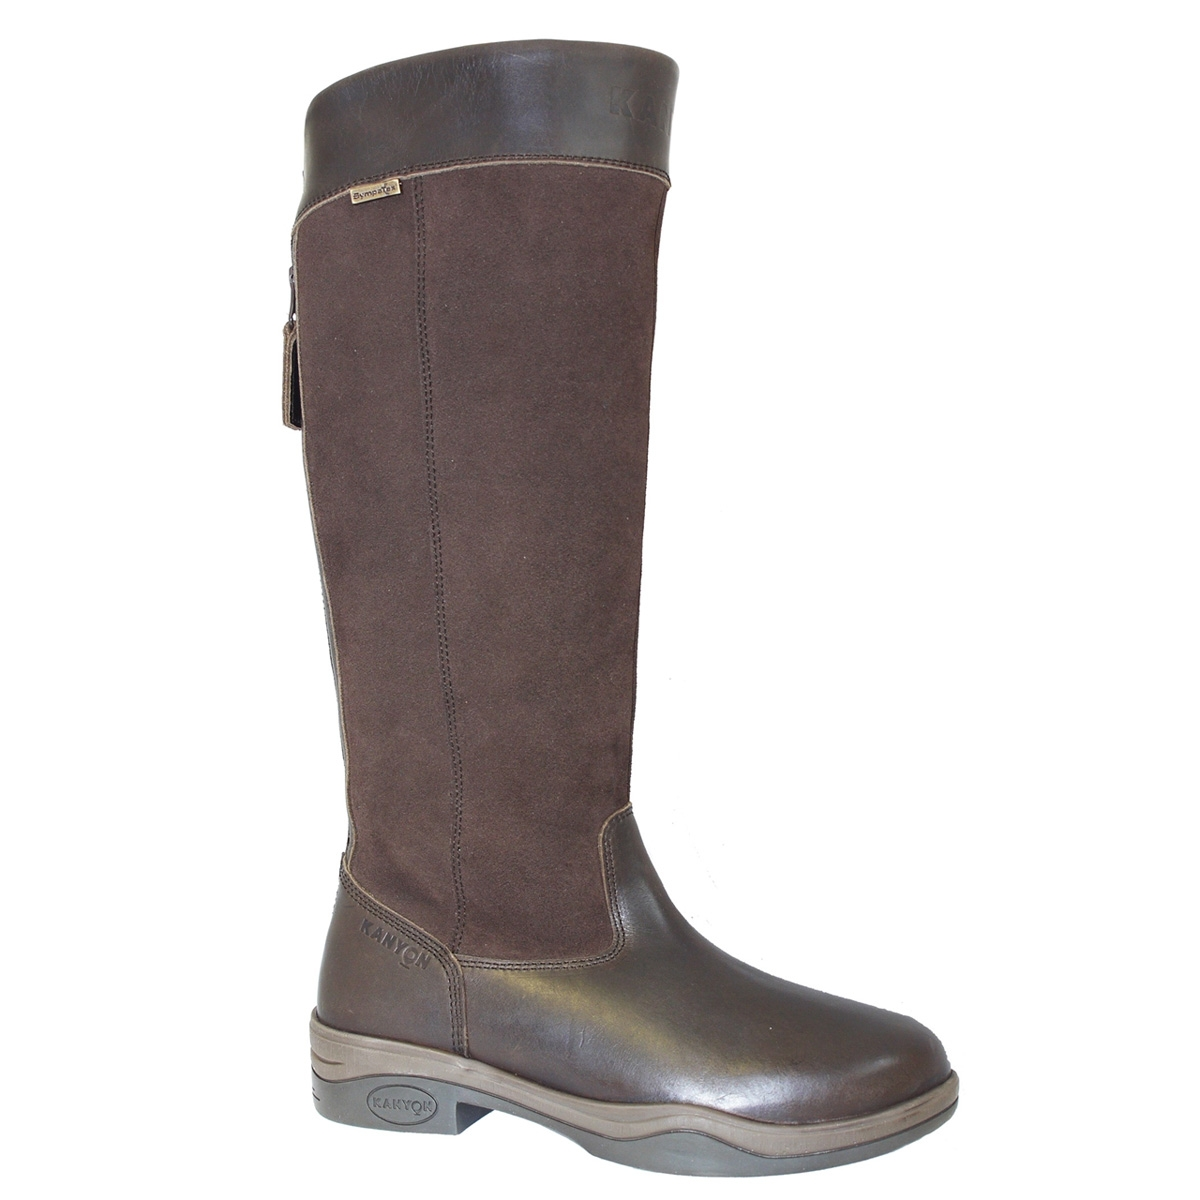 January 2013 Coltford Boots Part 3